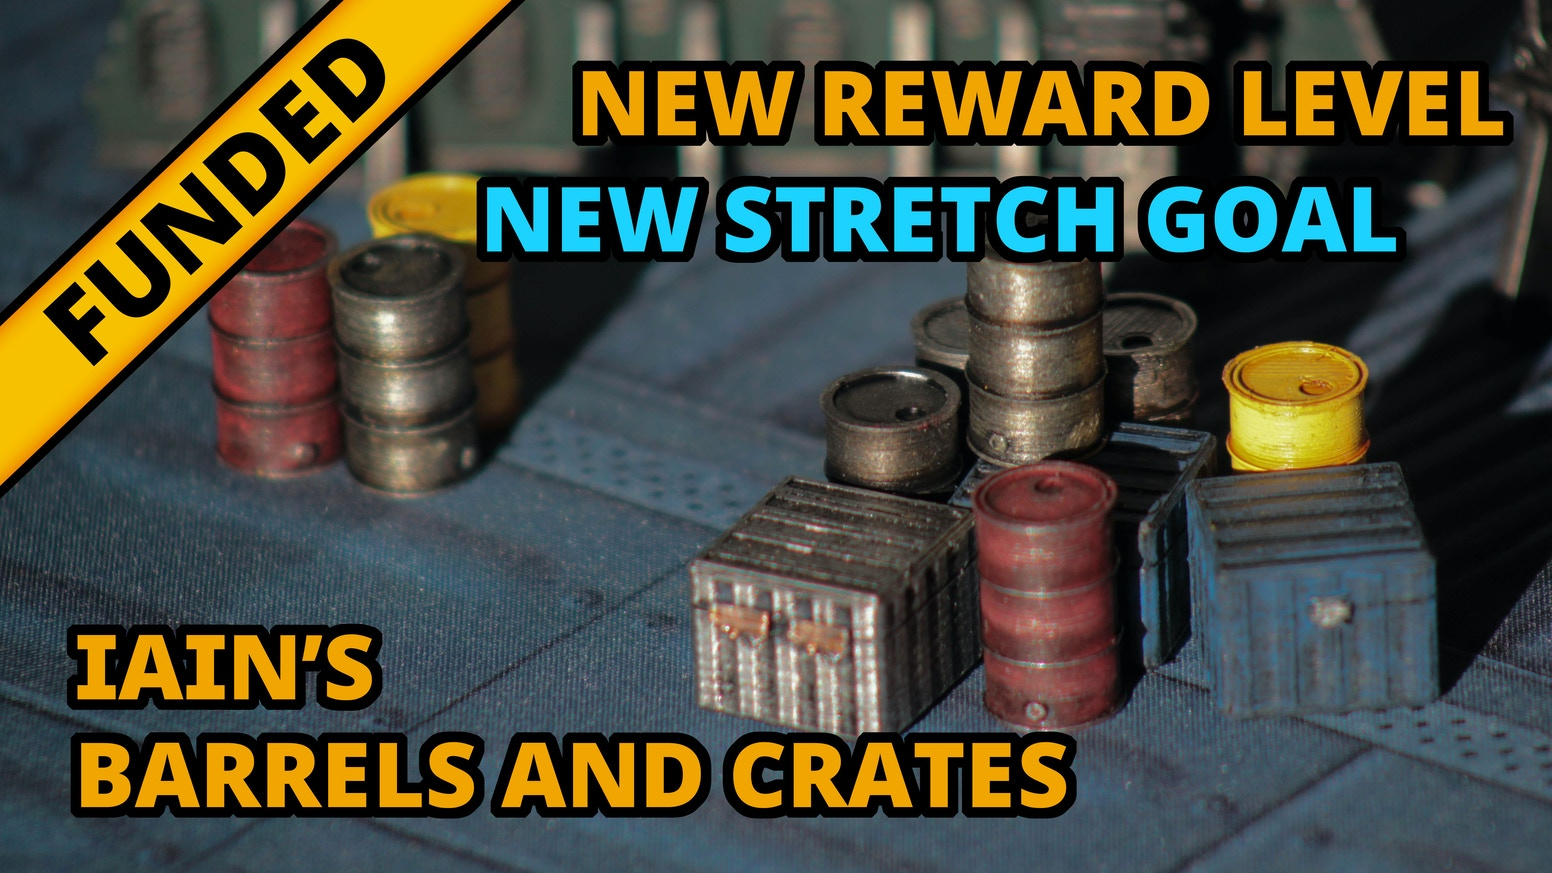 Pre-painted scale model barrels and crates, tabletop ready, for use as terrain and obstacles in modern/sci-fi roleplaying and wargames.